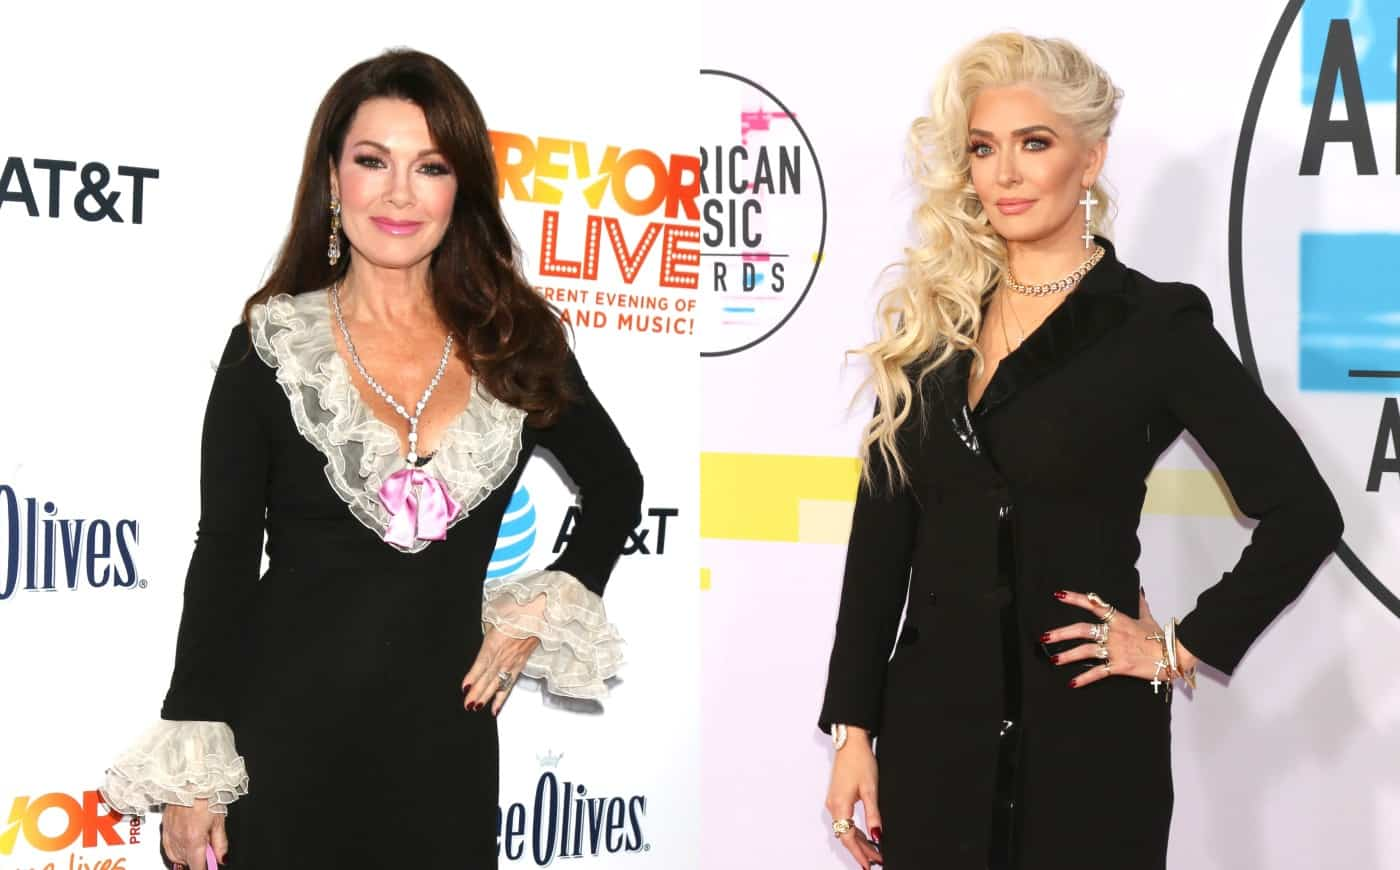 Lisa Vanderpump Takes Aim At 'Backstabbers' In 'RHOBH' Tagline, Erika Jayne Sides With NeNe